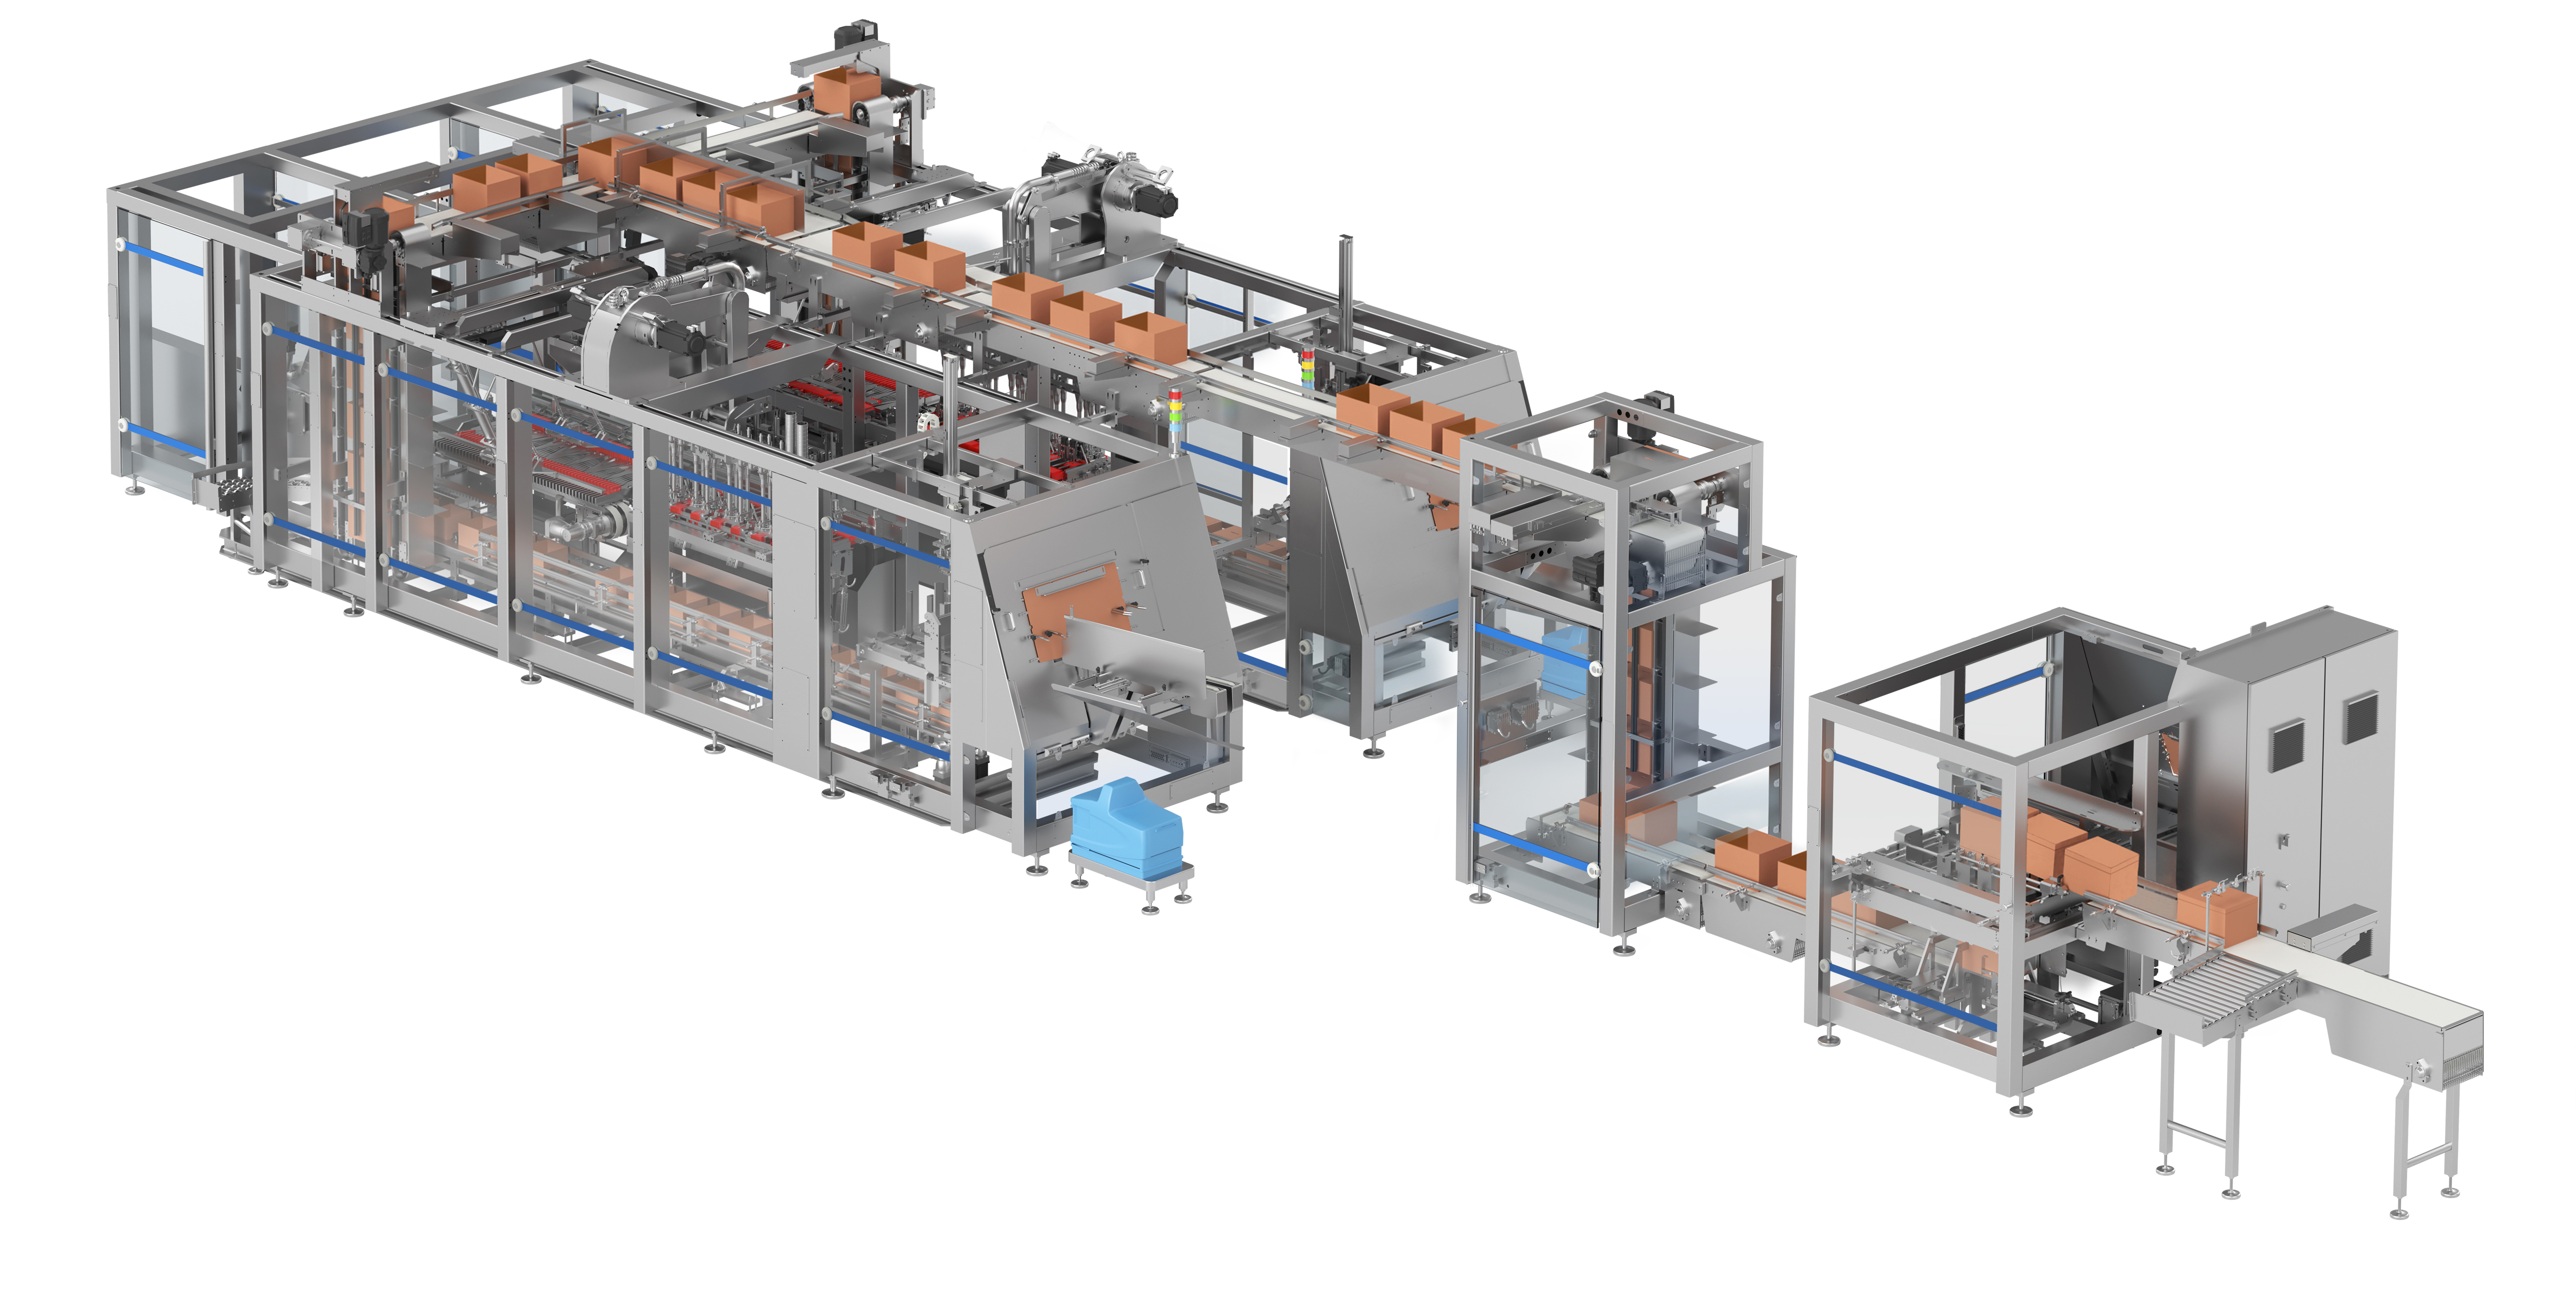 Wafer Packaging Line: systems integration